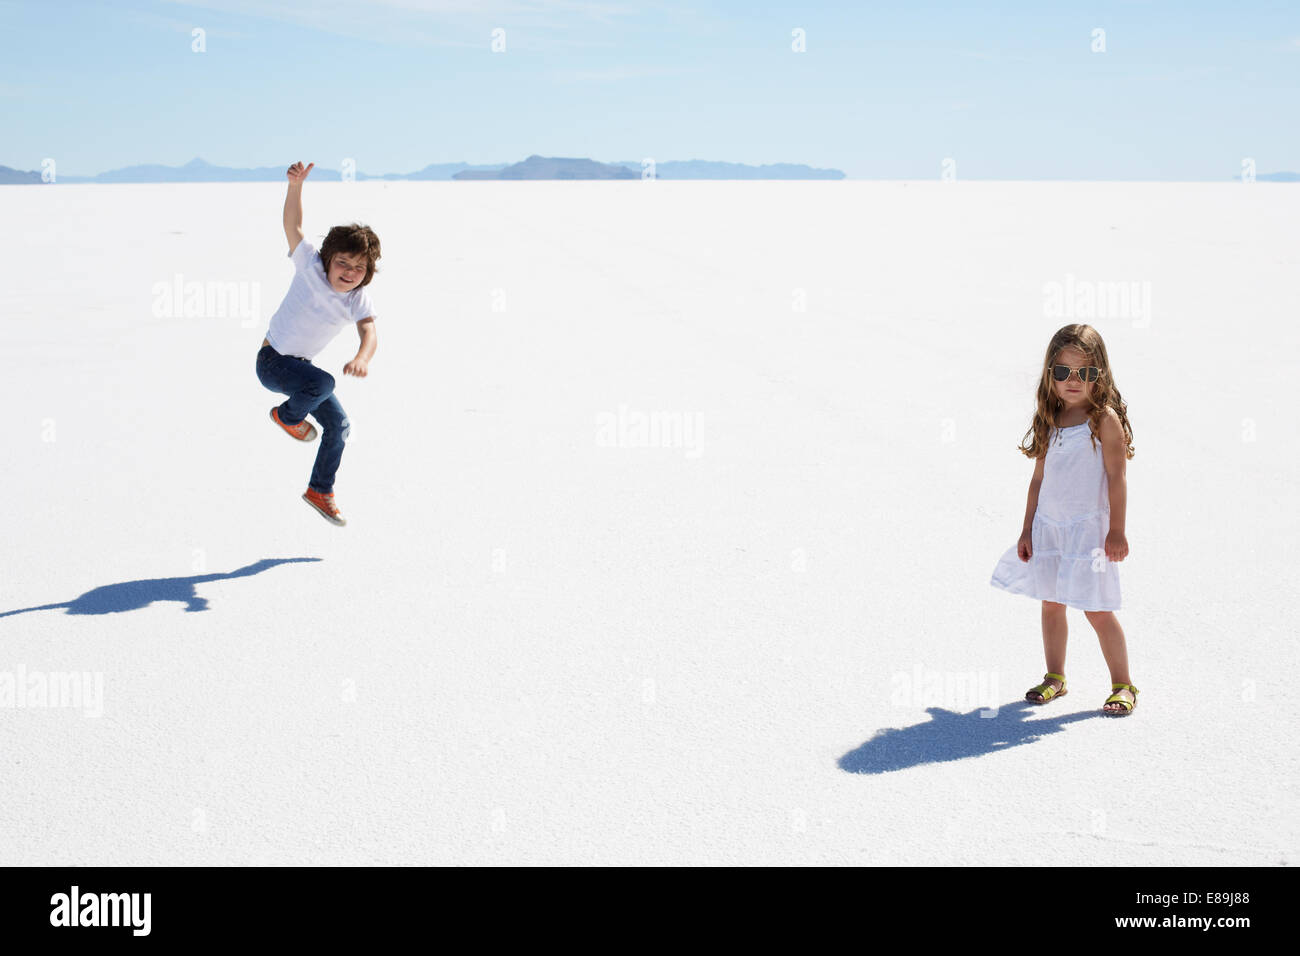 Enfants à la Bonneville Salt Flats Photo Stock